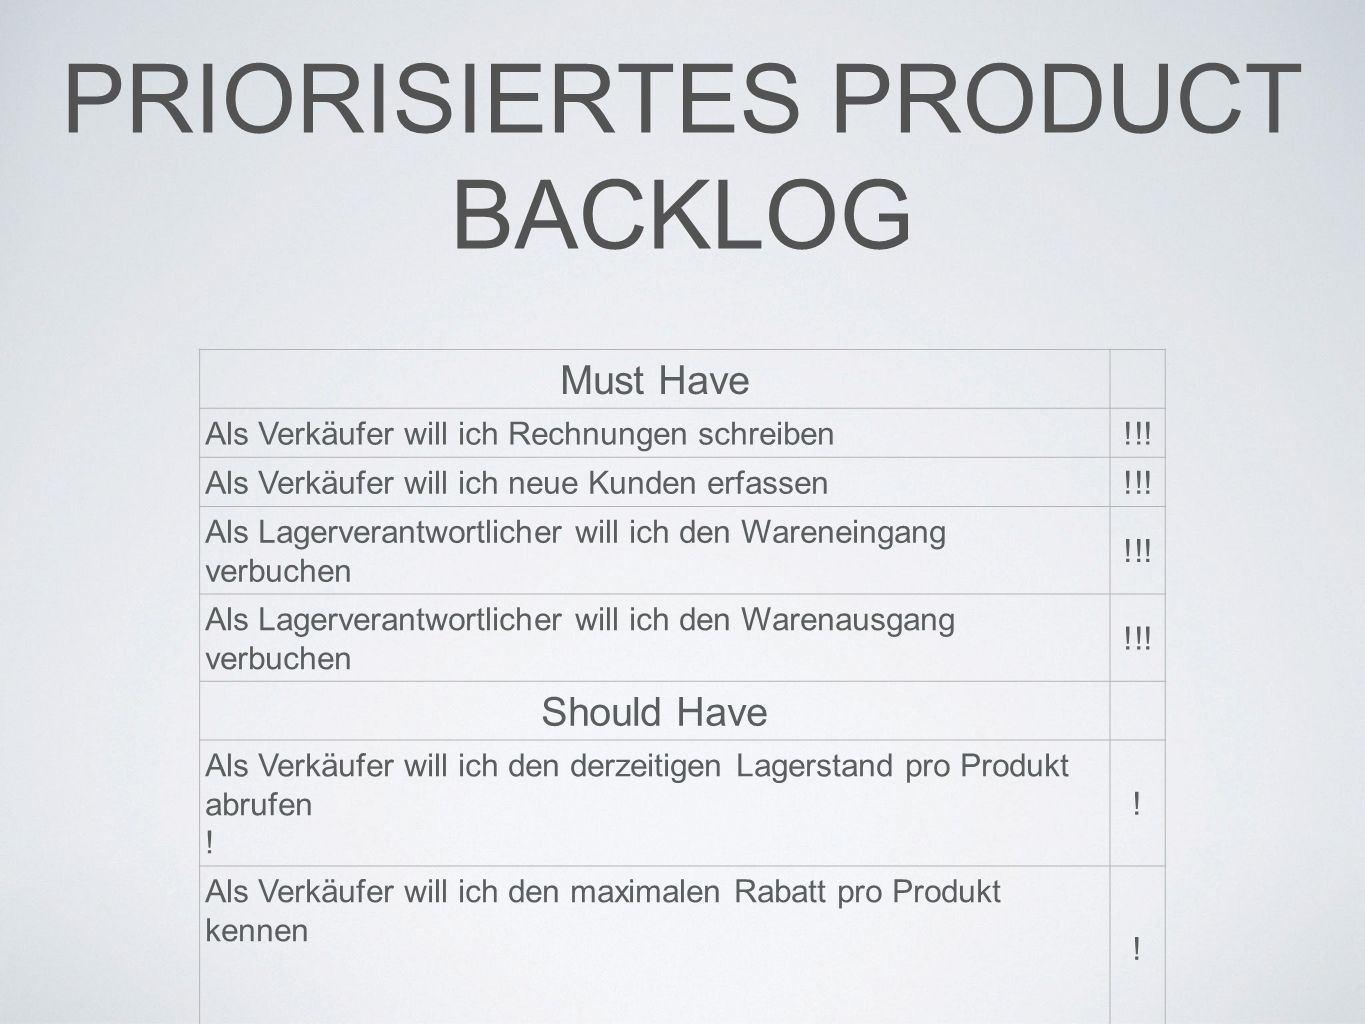 PRIORISIERTES PRODUCT BACKLOG